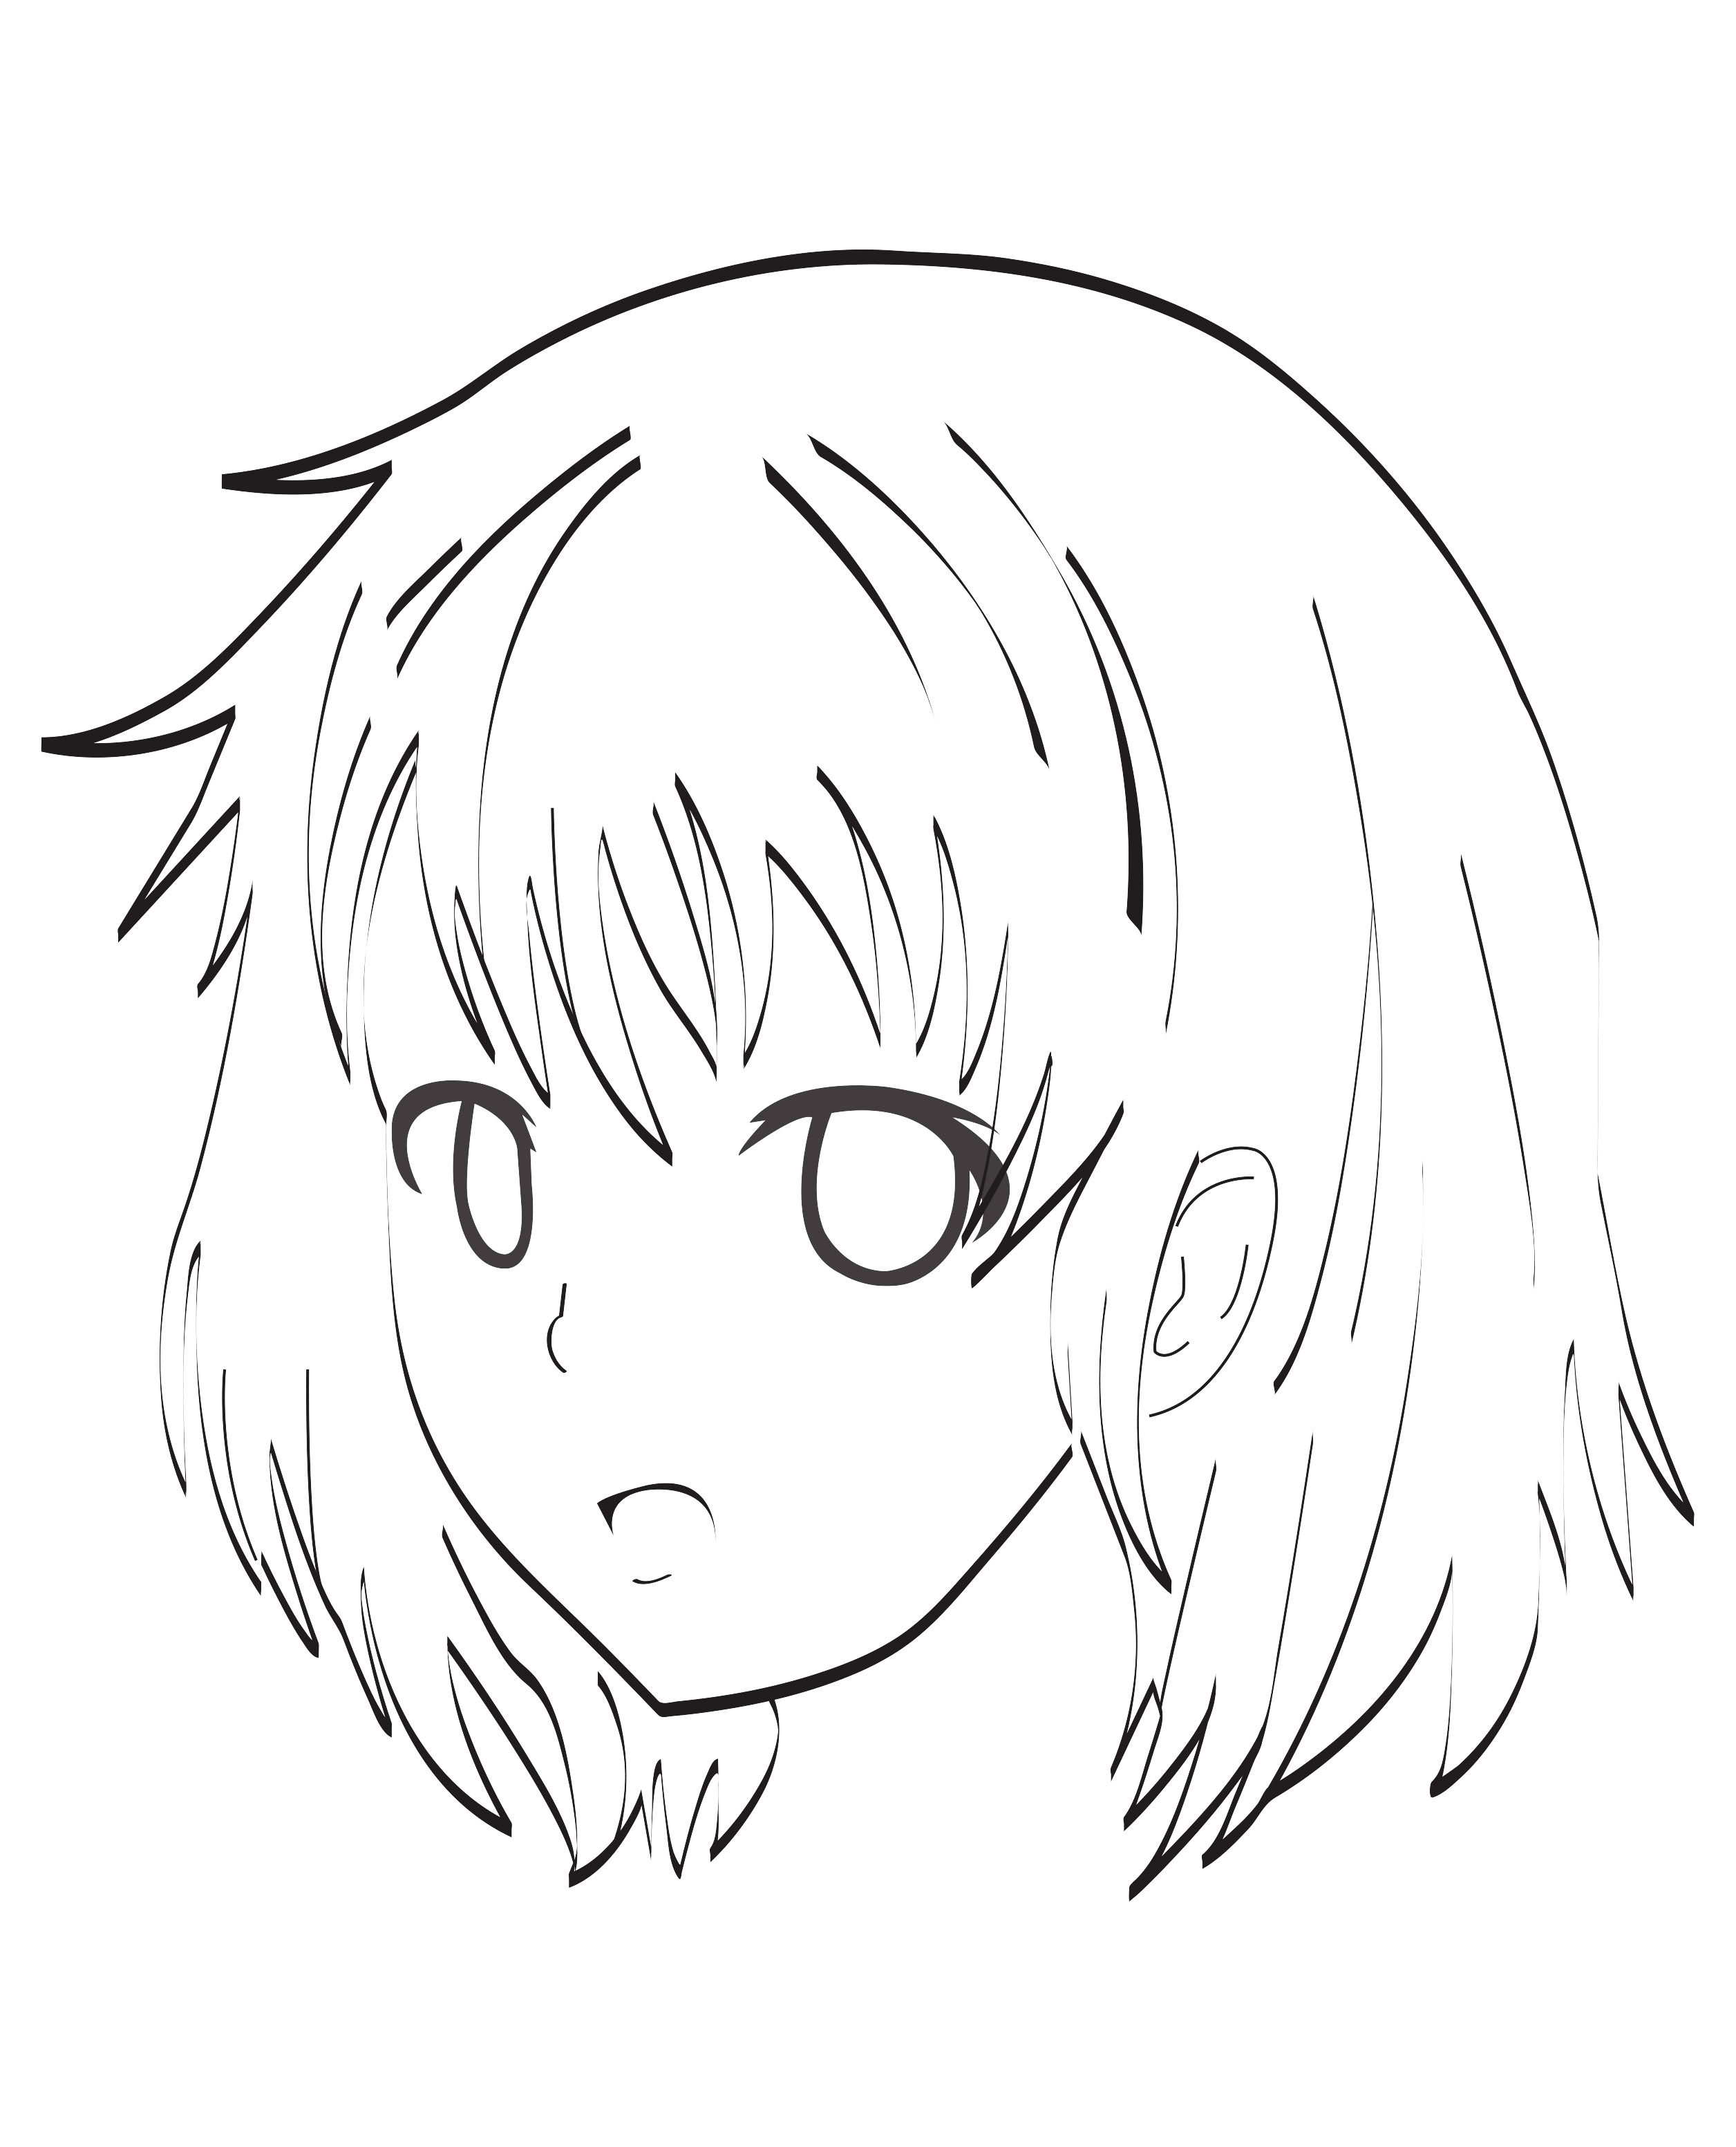 Manga Character Face Manga Anime Adult Coloring Pages